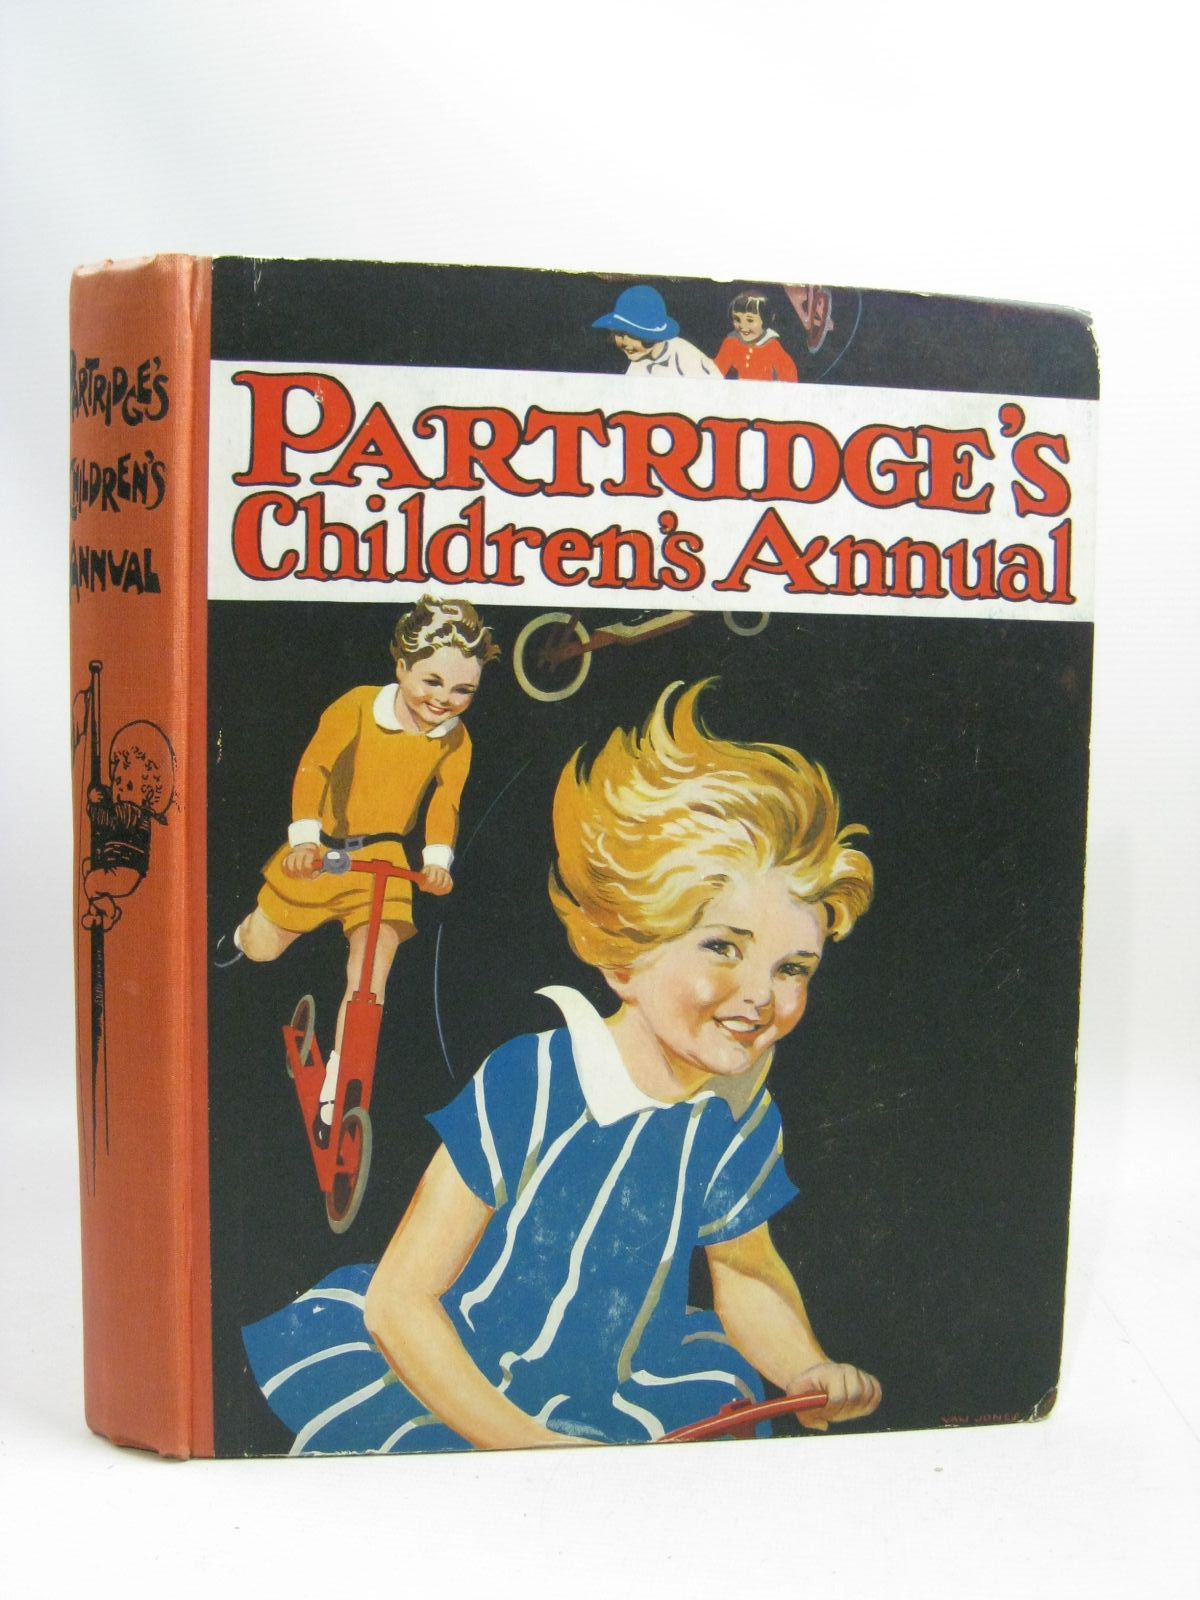 Photo of PARTRIDGE'S CHILDREN'S ANNUAL - 18TH YEAR written by Rutley, Cecily M. Lea, John Whitaker, Evelyn et al, illustrated by Neilson, Harry B. Brisley, Nina K. Anderson, Florence Mary Lambert, H.G.C. Marsh et al., published by Partridge (STOCK CODE: 1404919)  for sale by Stella & Rose's Books